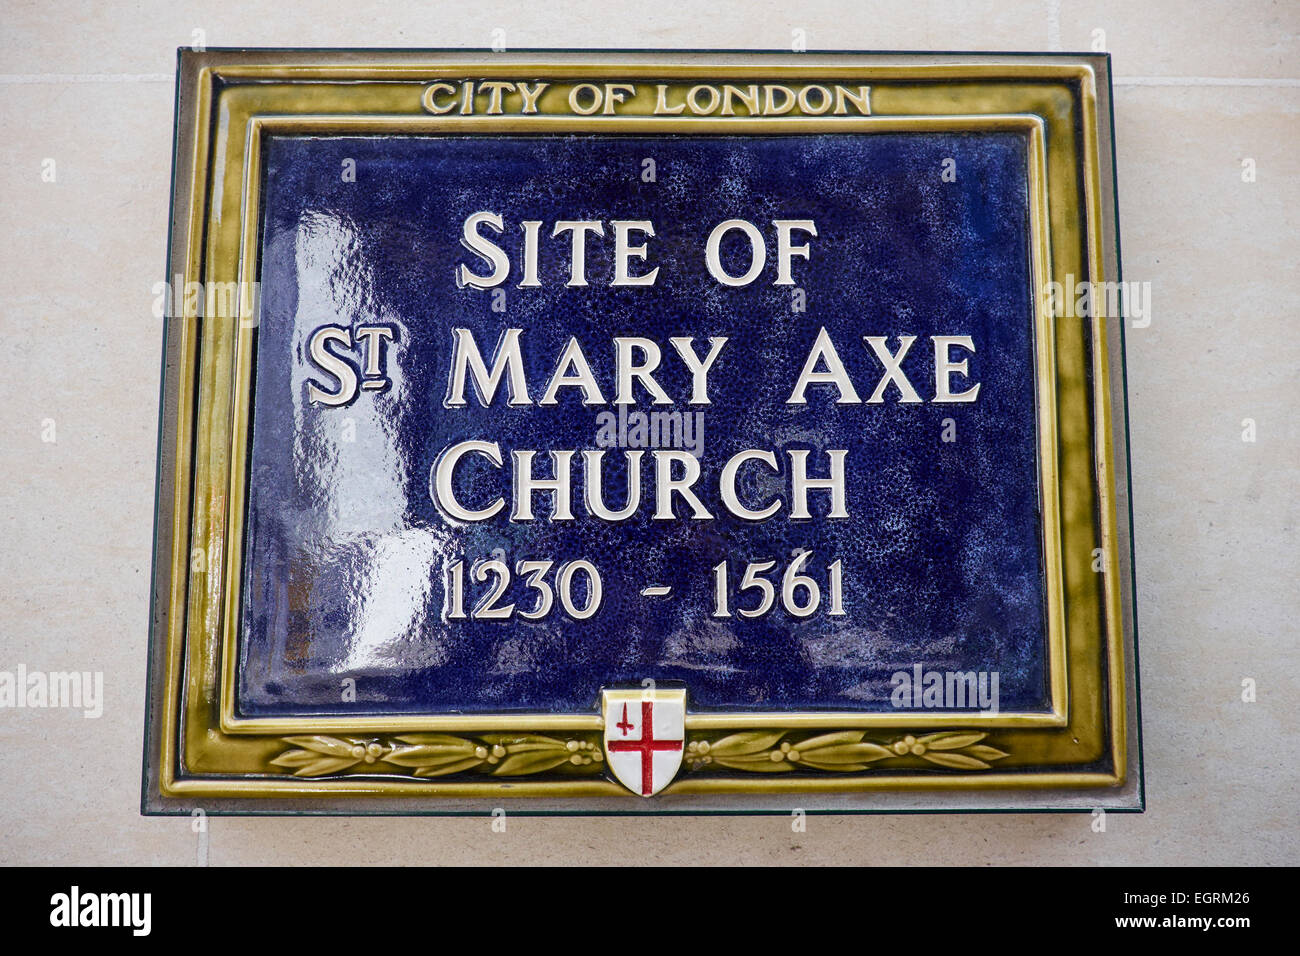 Blue Plaque Marking The Former Site Of St Mary Axe Church City Of London UK - Stock Image